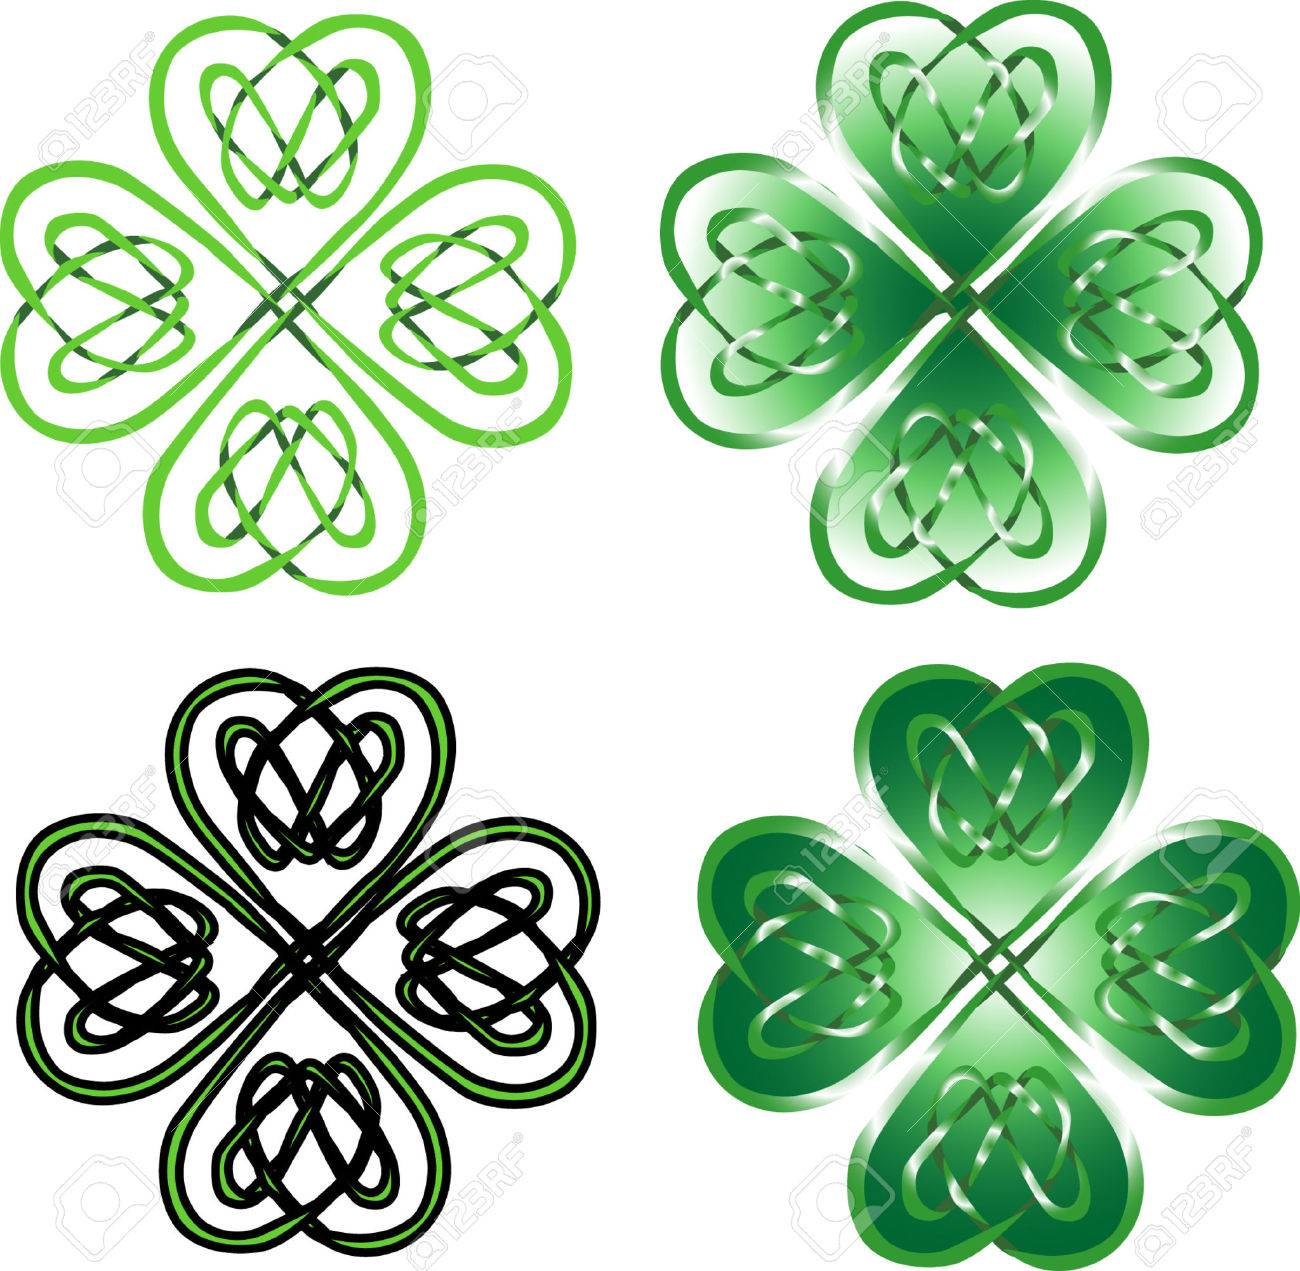 four leaf clover celtic ornament royalty free cliparts vectors